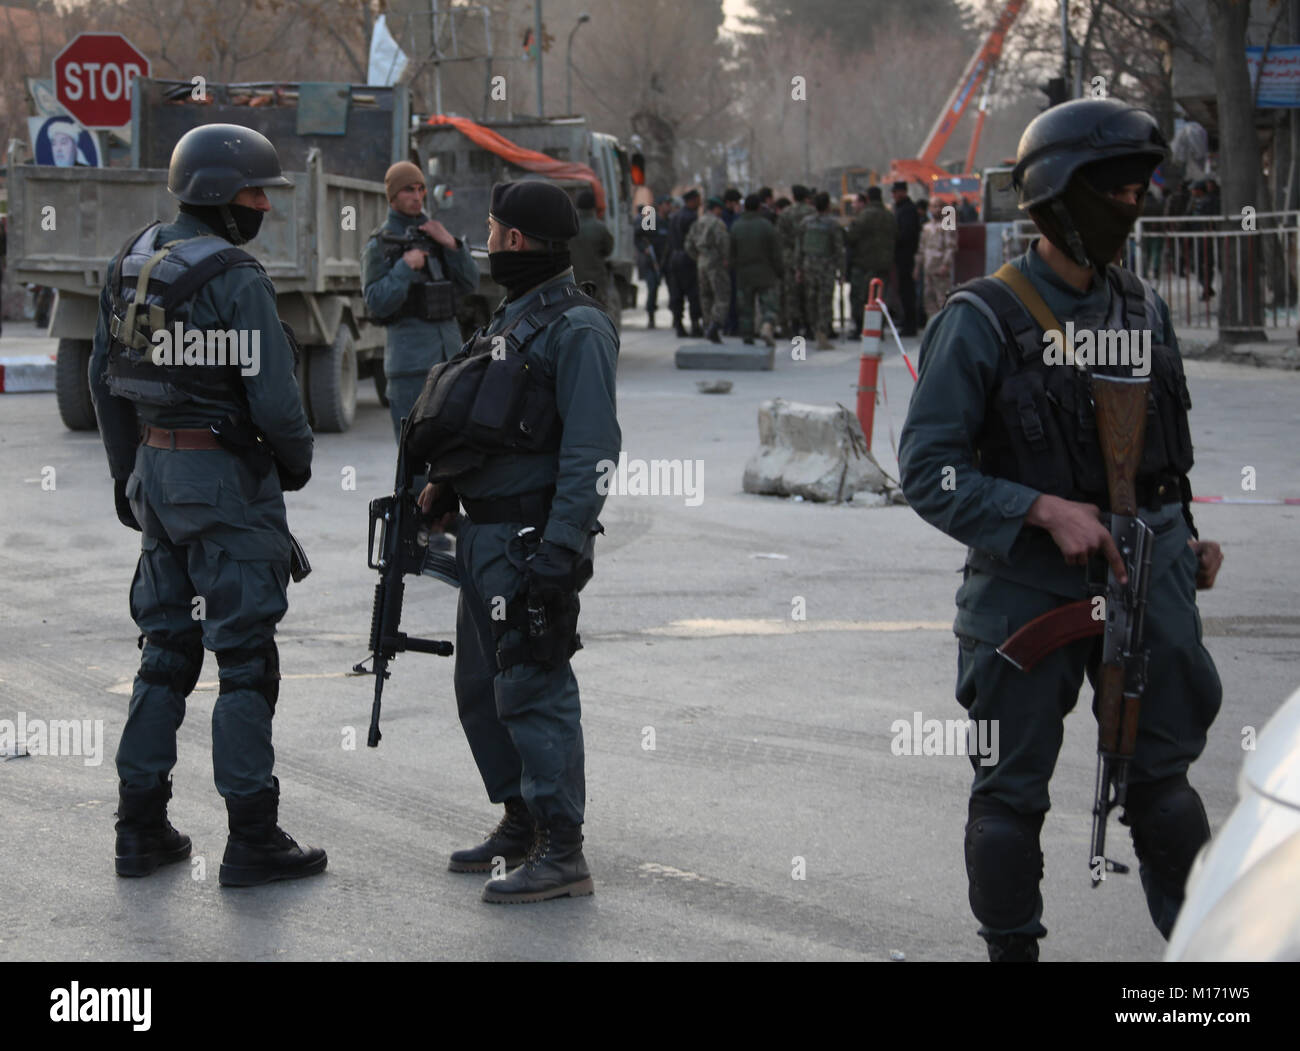 Kabul, Afghanistan. 27th Jan, 2018. Security force members stand guard at the blast site in Kabul, Afghanistan, - Stock Image